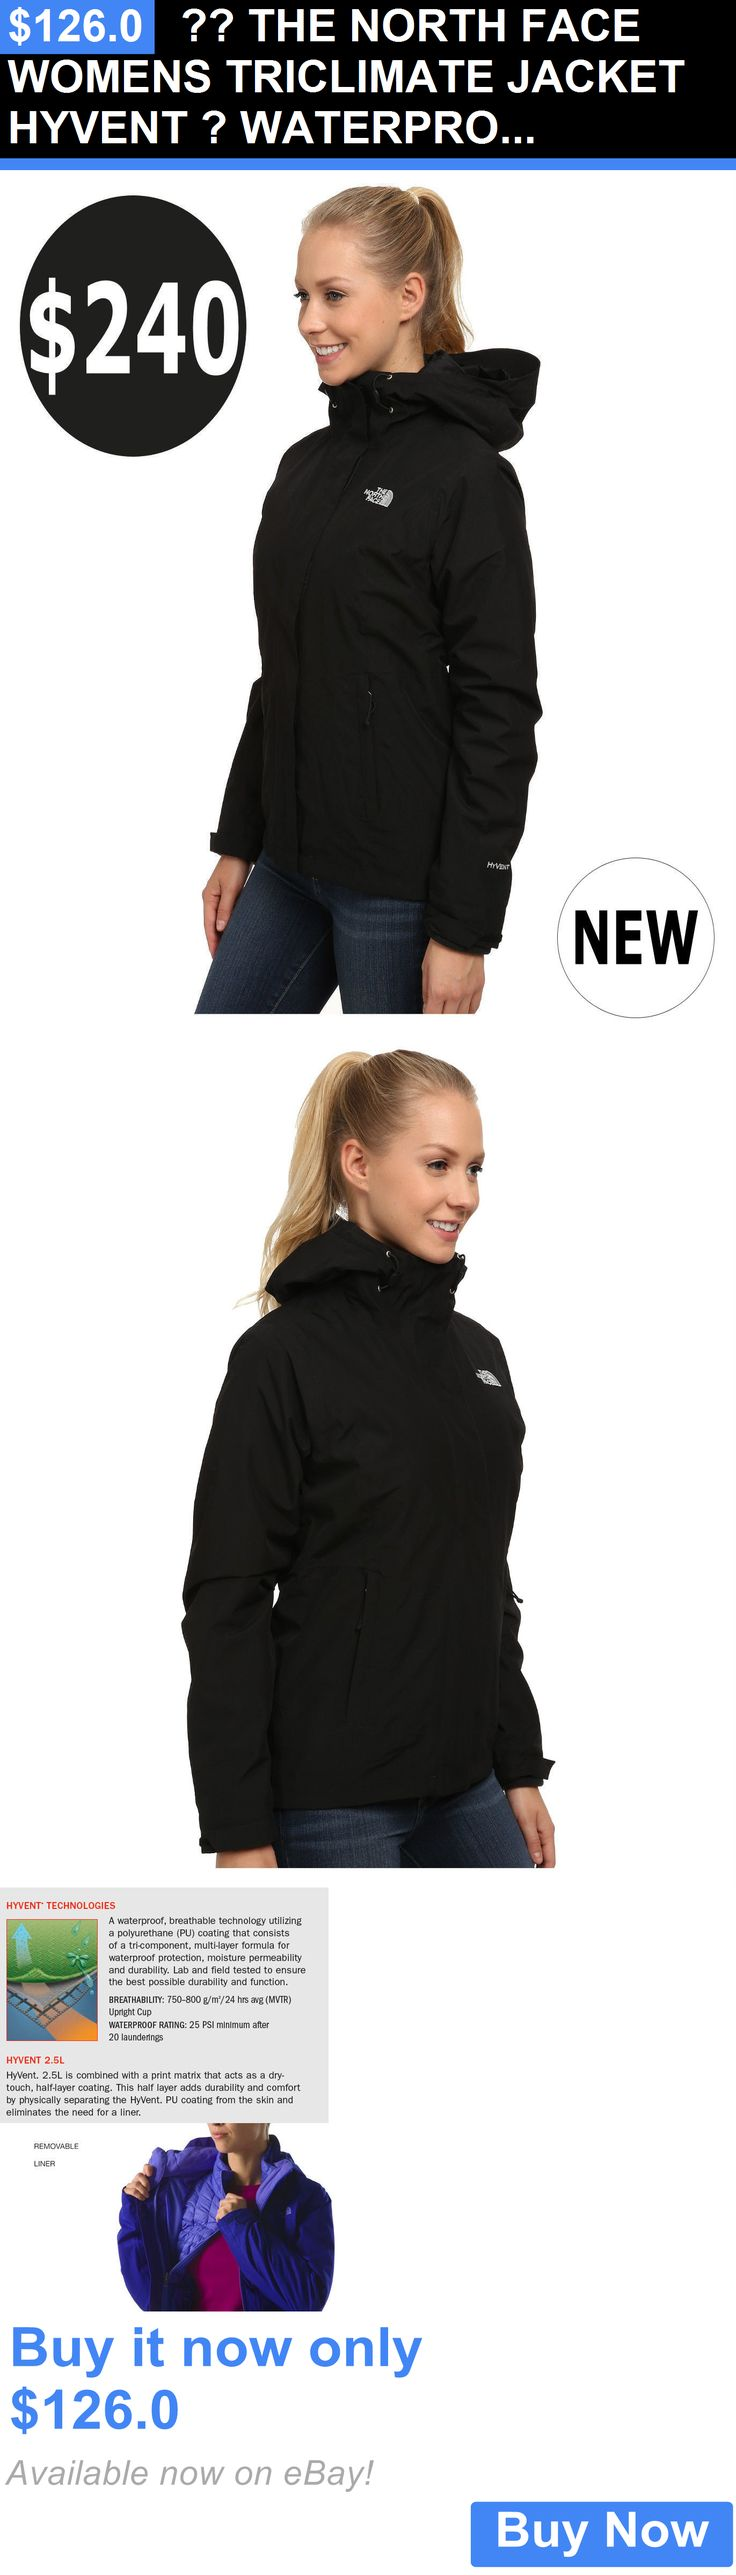 Women Fashion: ?? The North Face Womens Triclimate Jacket Hyvent ? Waterproof S,M,L,Xl,Xxl $240 BUY IT NOW ONLY: $126.0